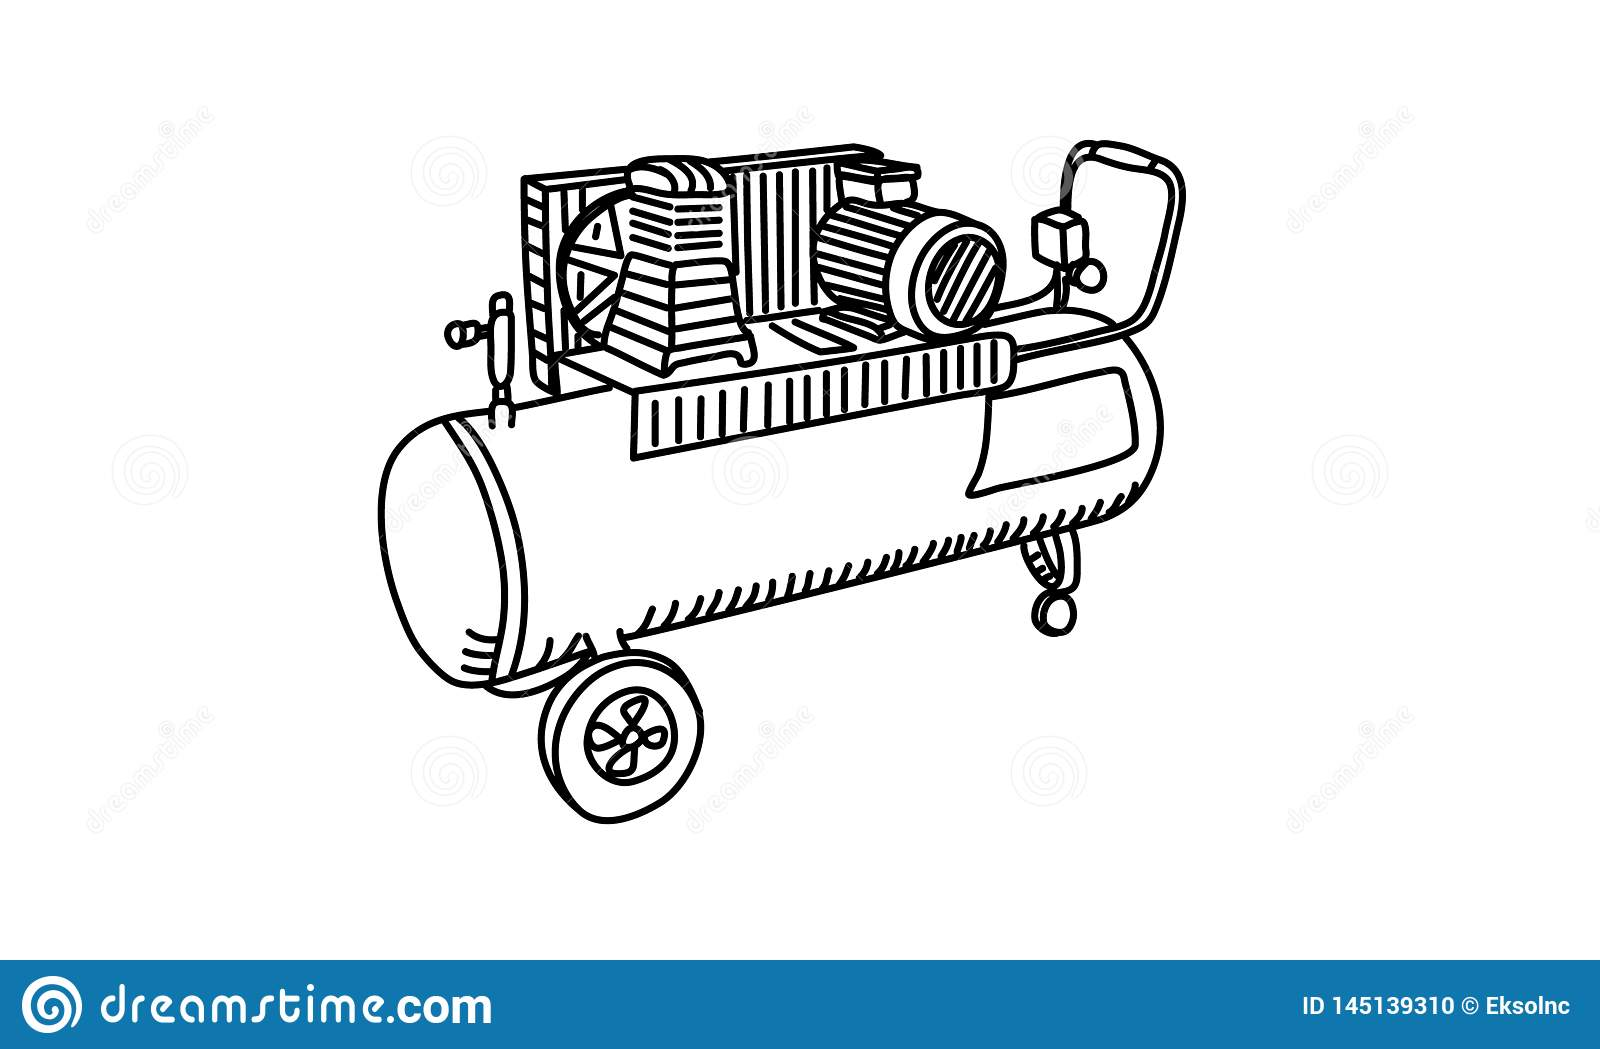 Air Compressor Drawing Line Vector Stock Illustration